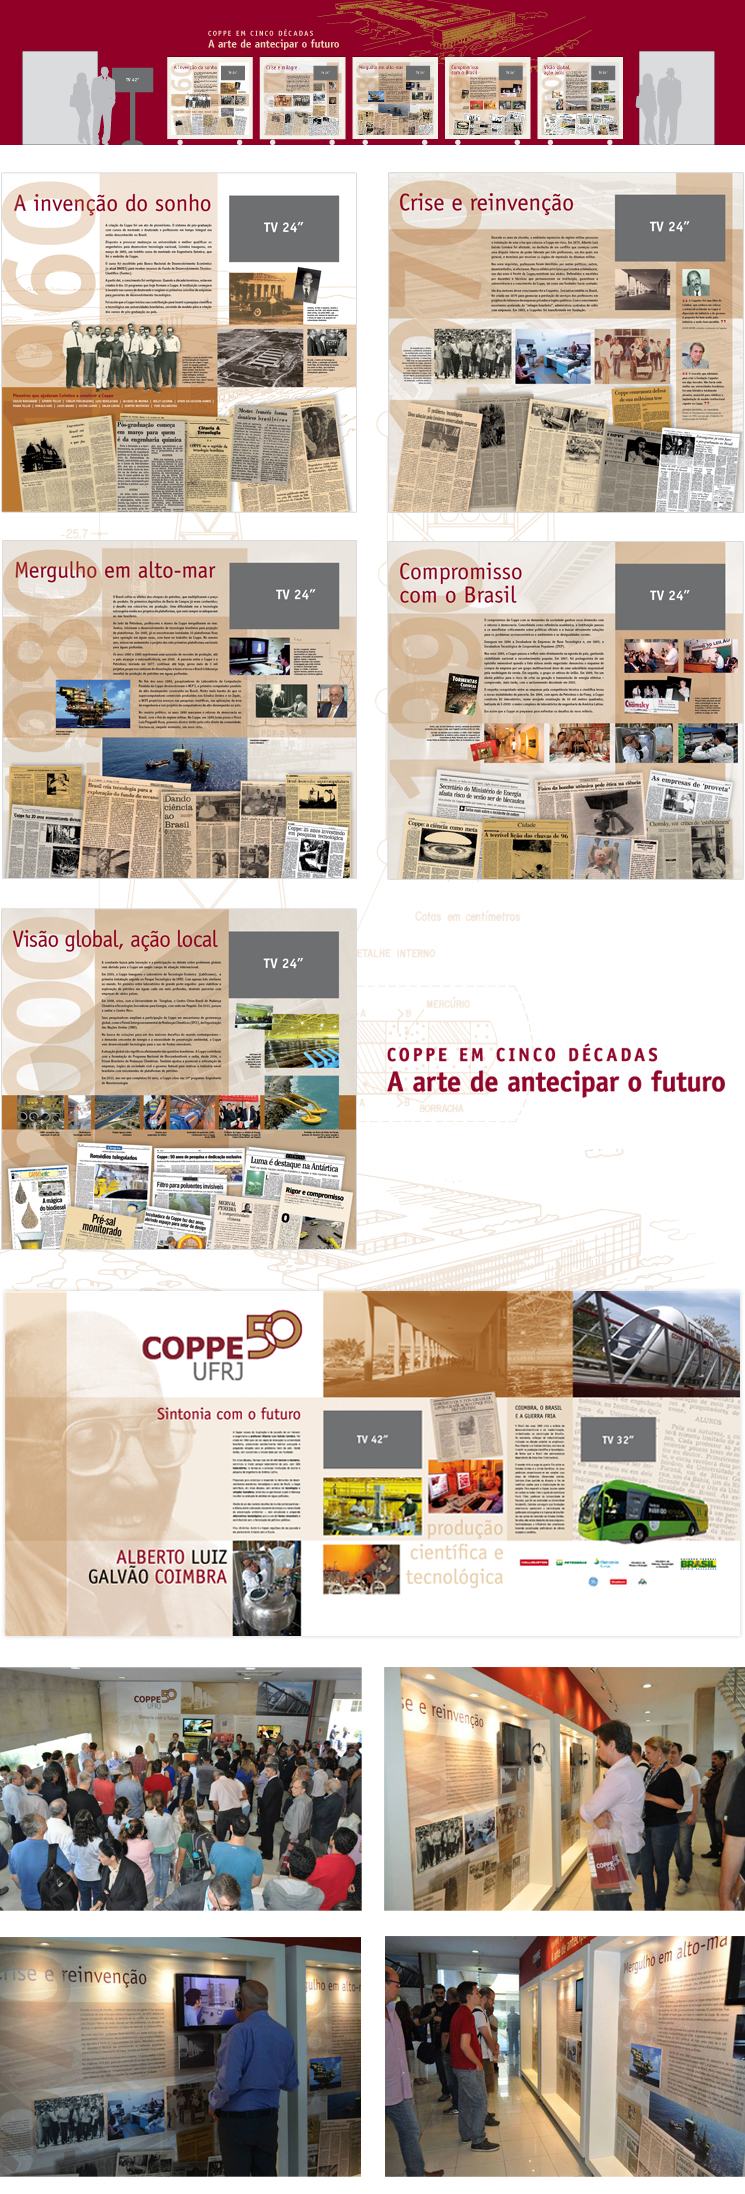 coppe-expo-site-2